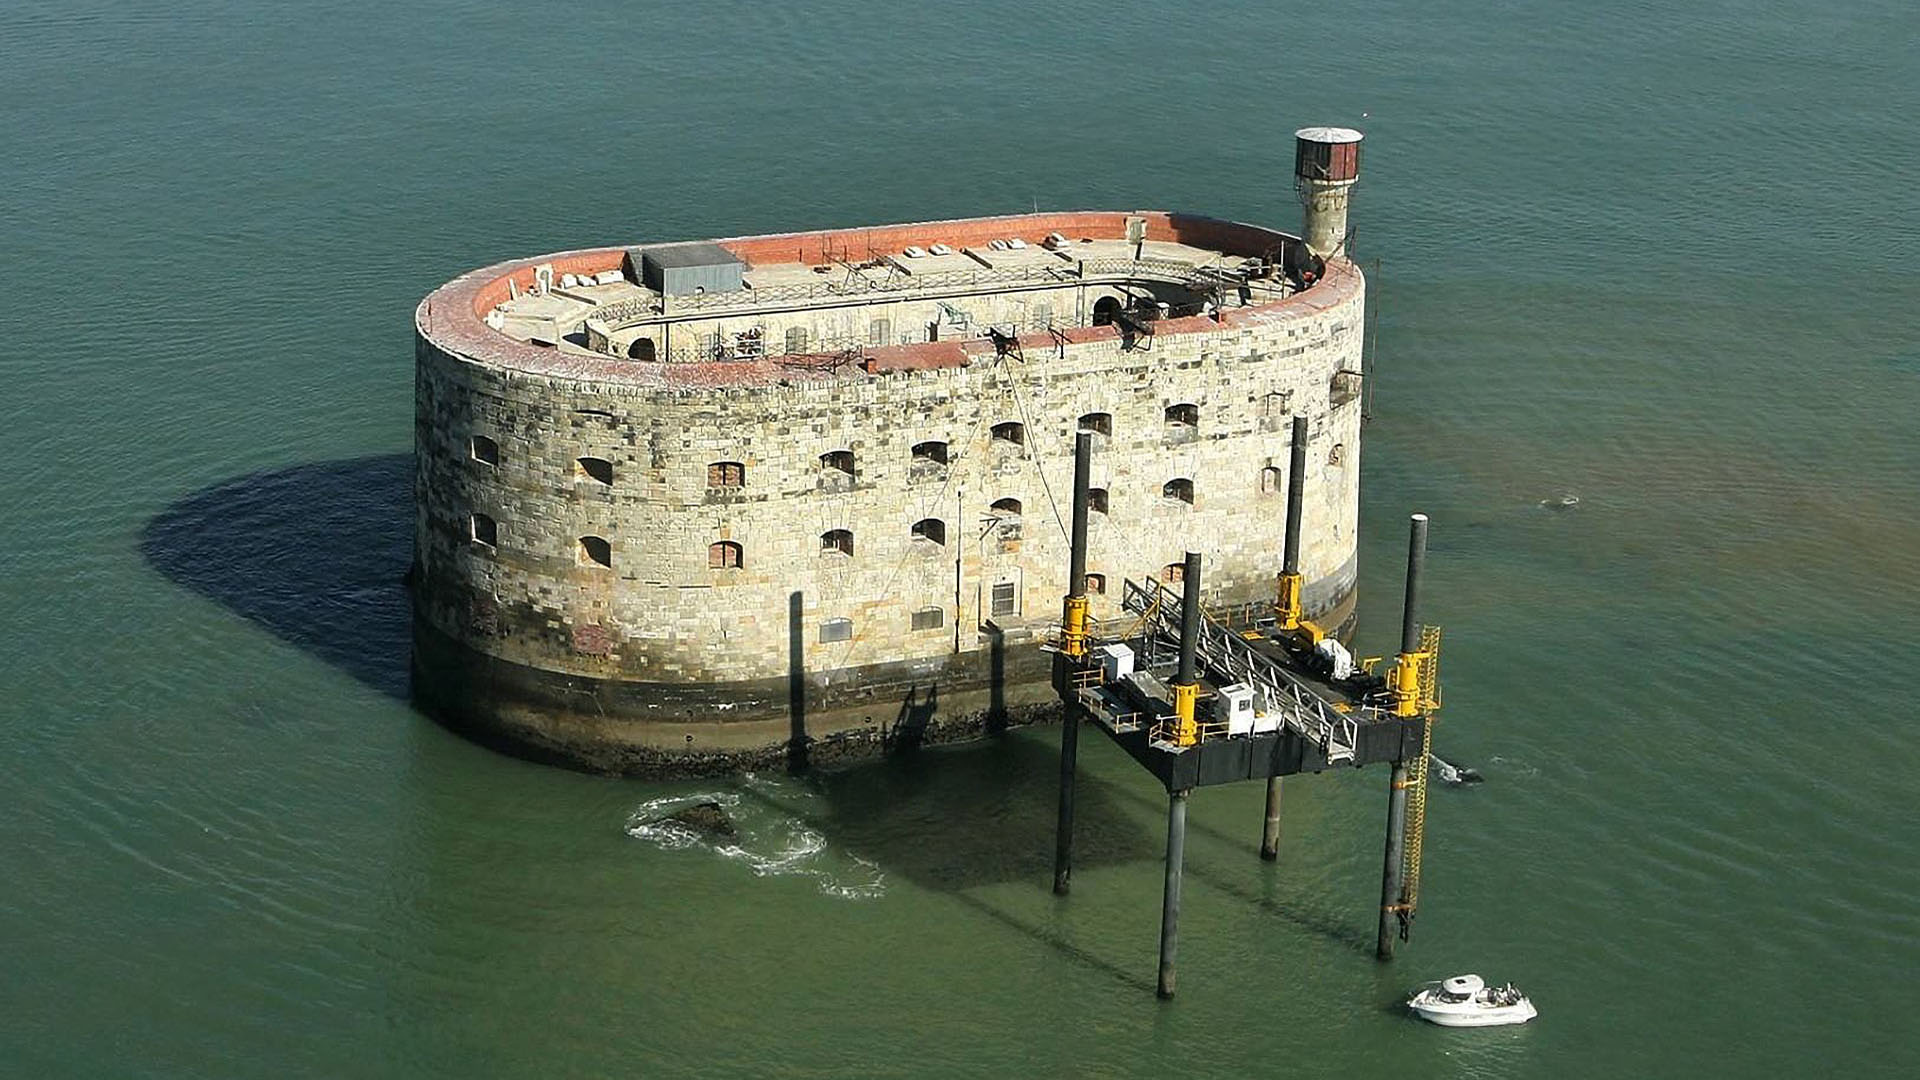 fort boyard les terres cuites gillaizeaules terres cuites gillaizeau. Black Bedroom Furniture Sets. Home Design Ideas